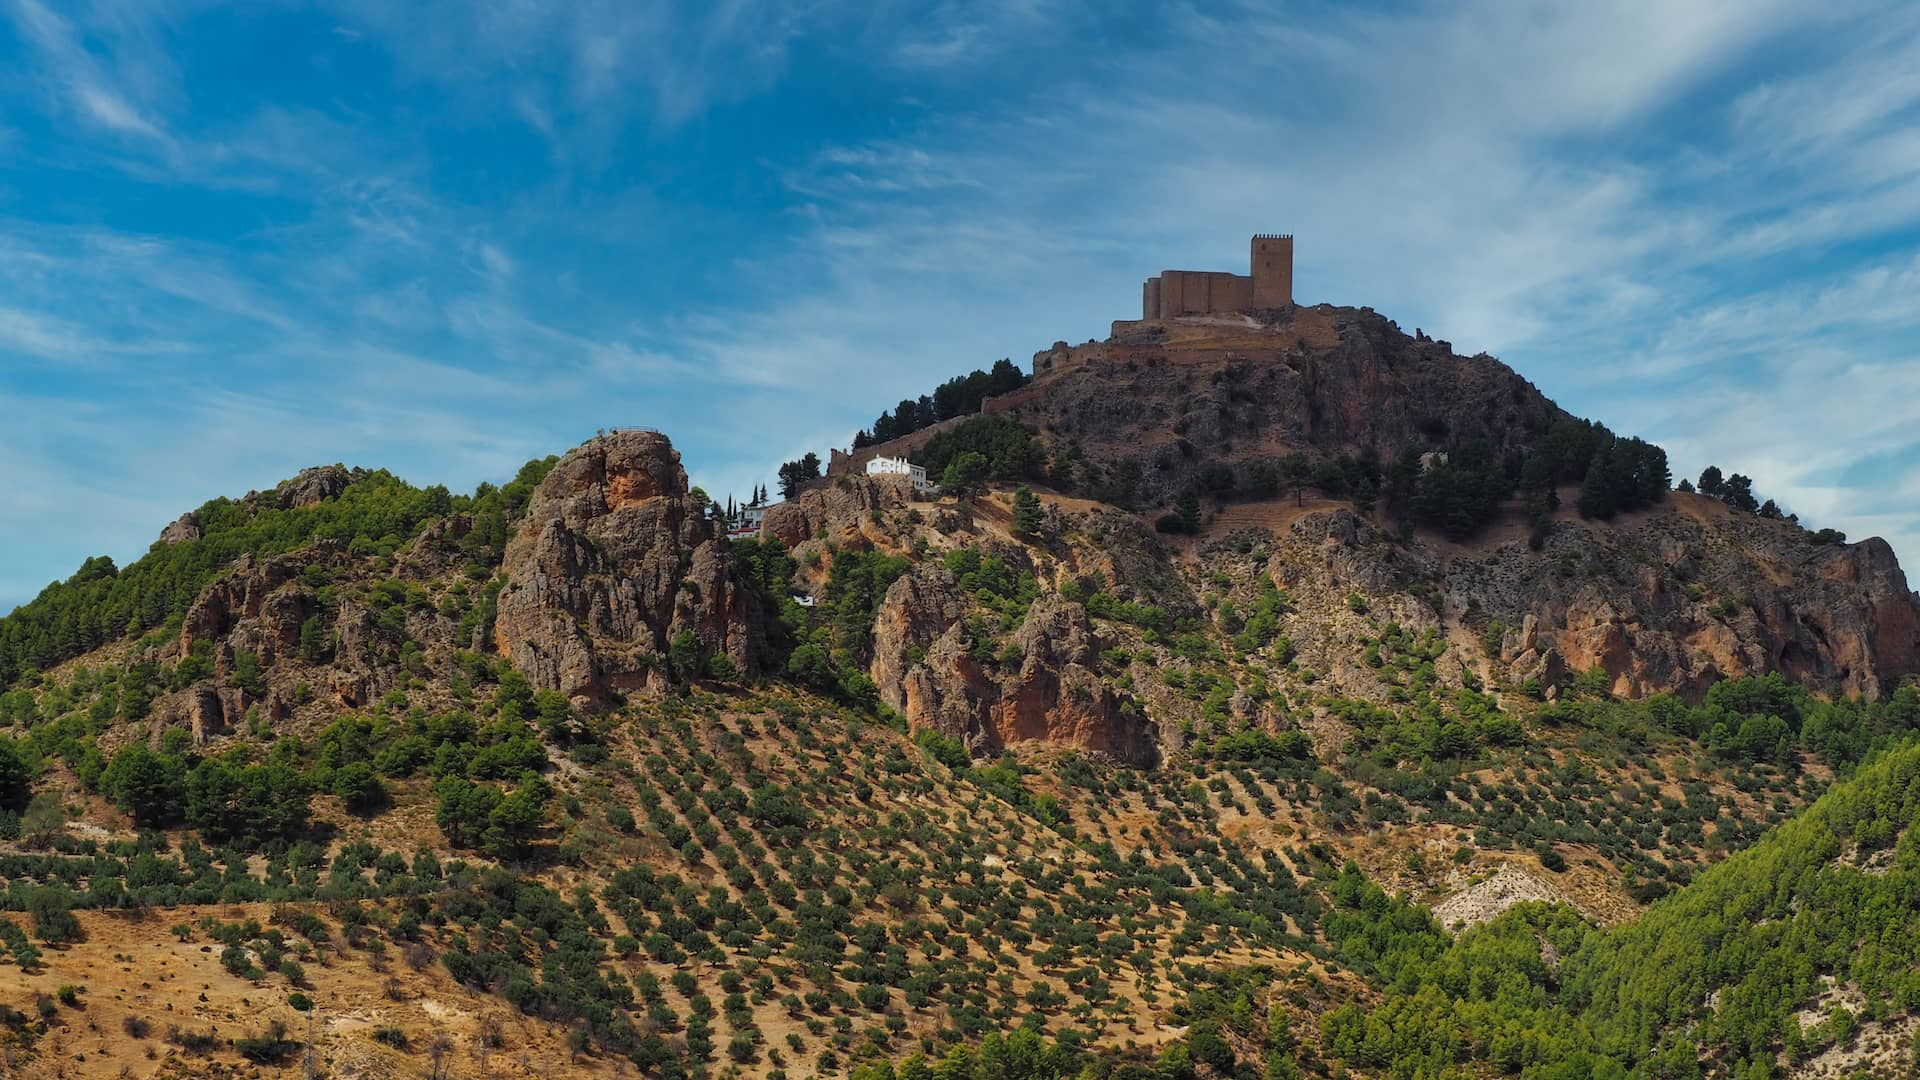 A castle sits atop a hillside, overlooking olive groves